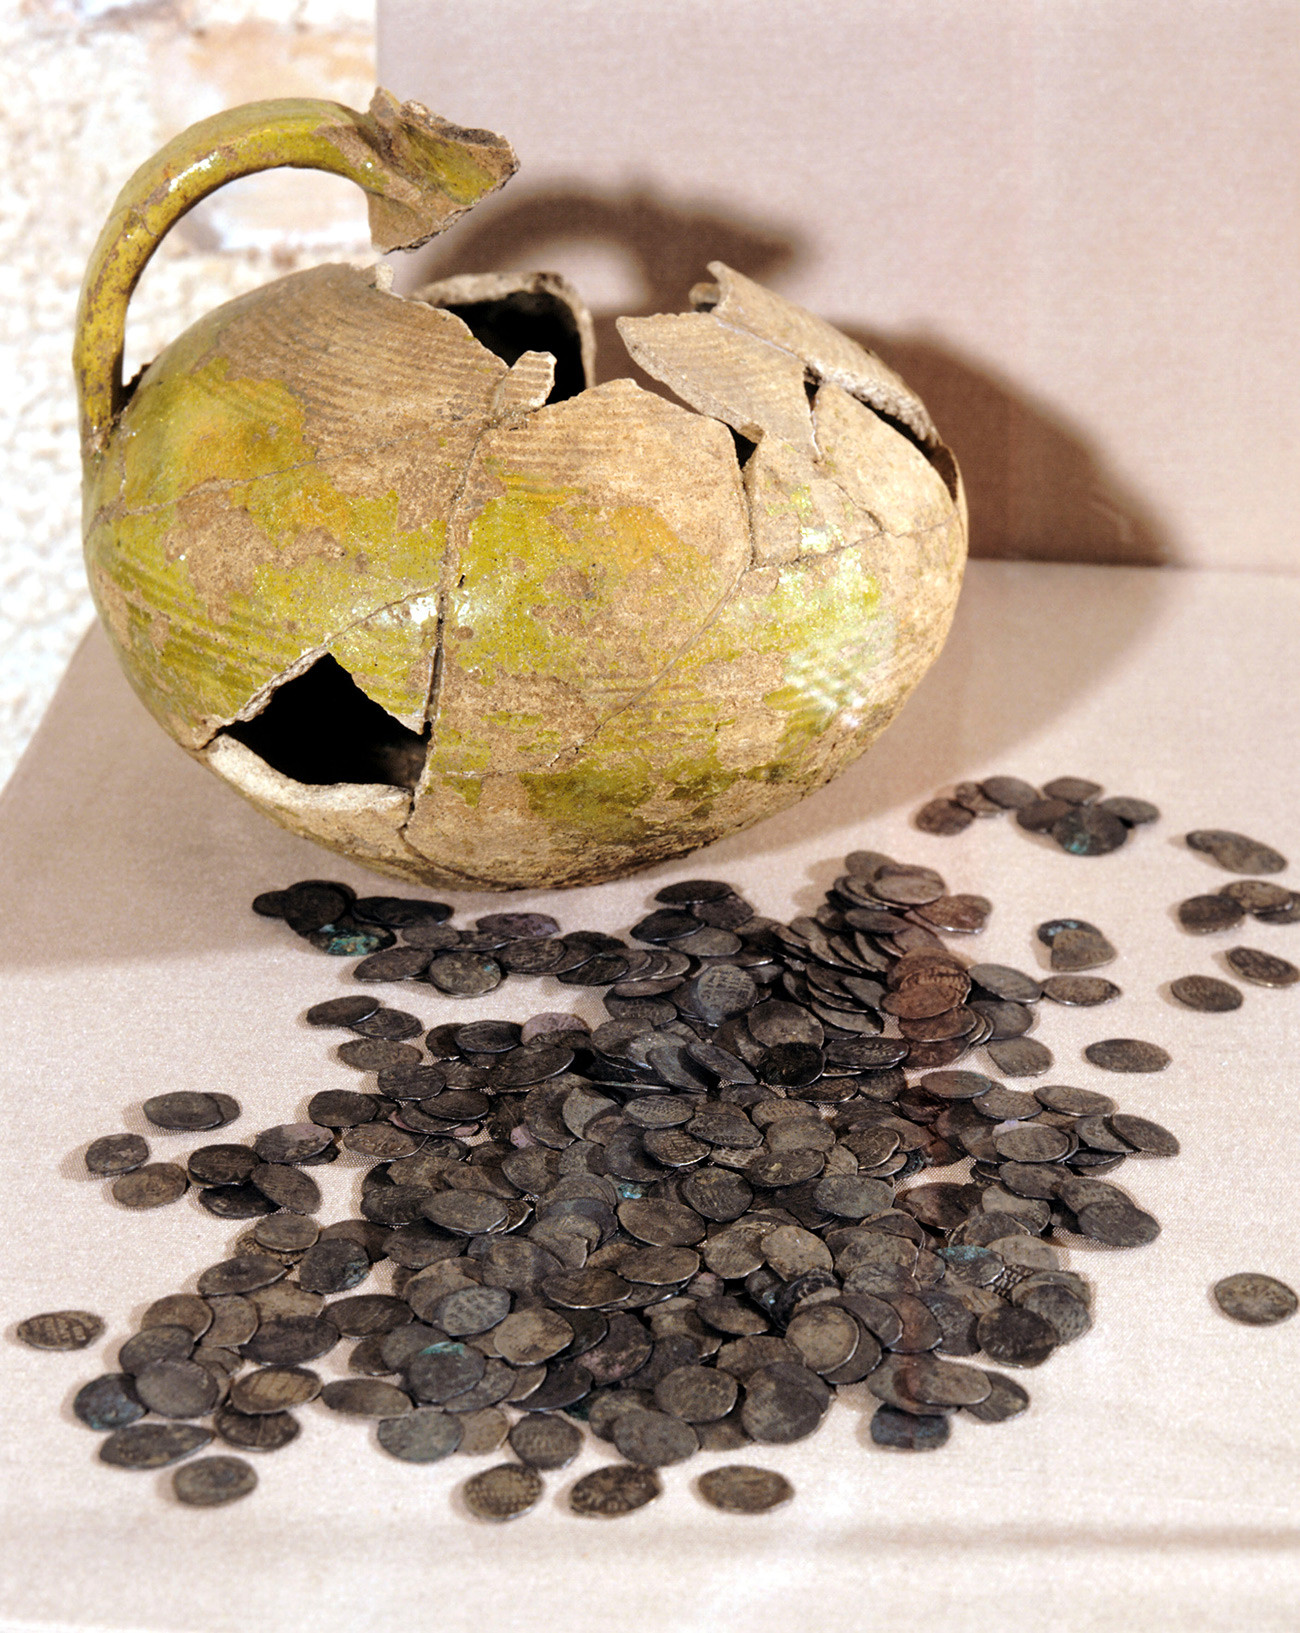 Coins of 16-17 centuries. This is how money of Ivan the Terrible's epoch looked like.